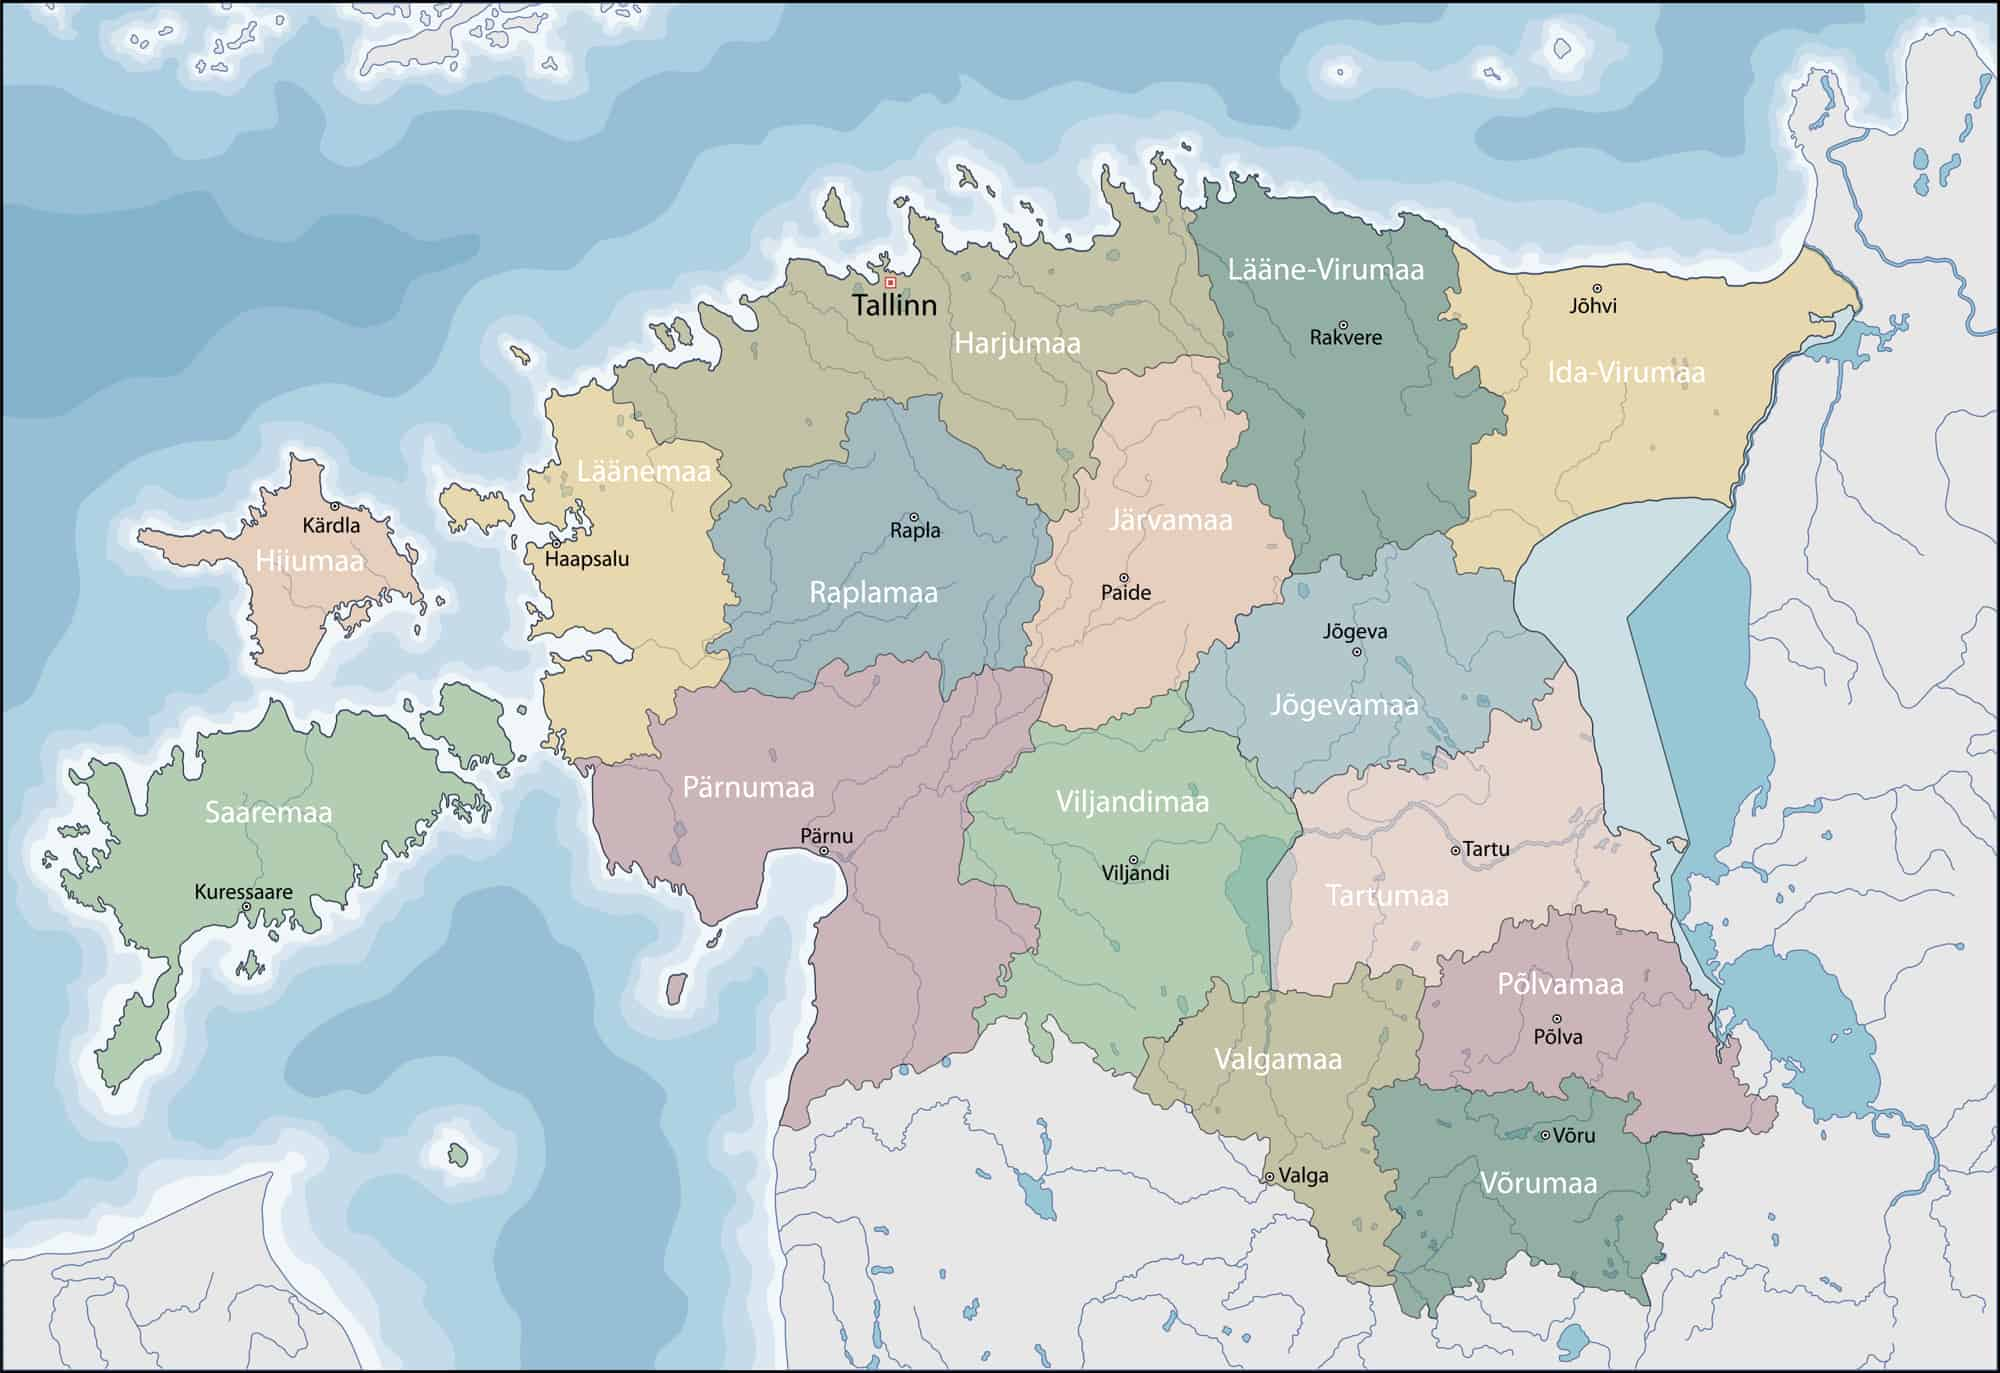 Estonia Political Map with Regions and Main Cities